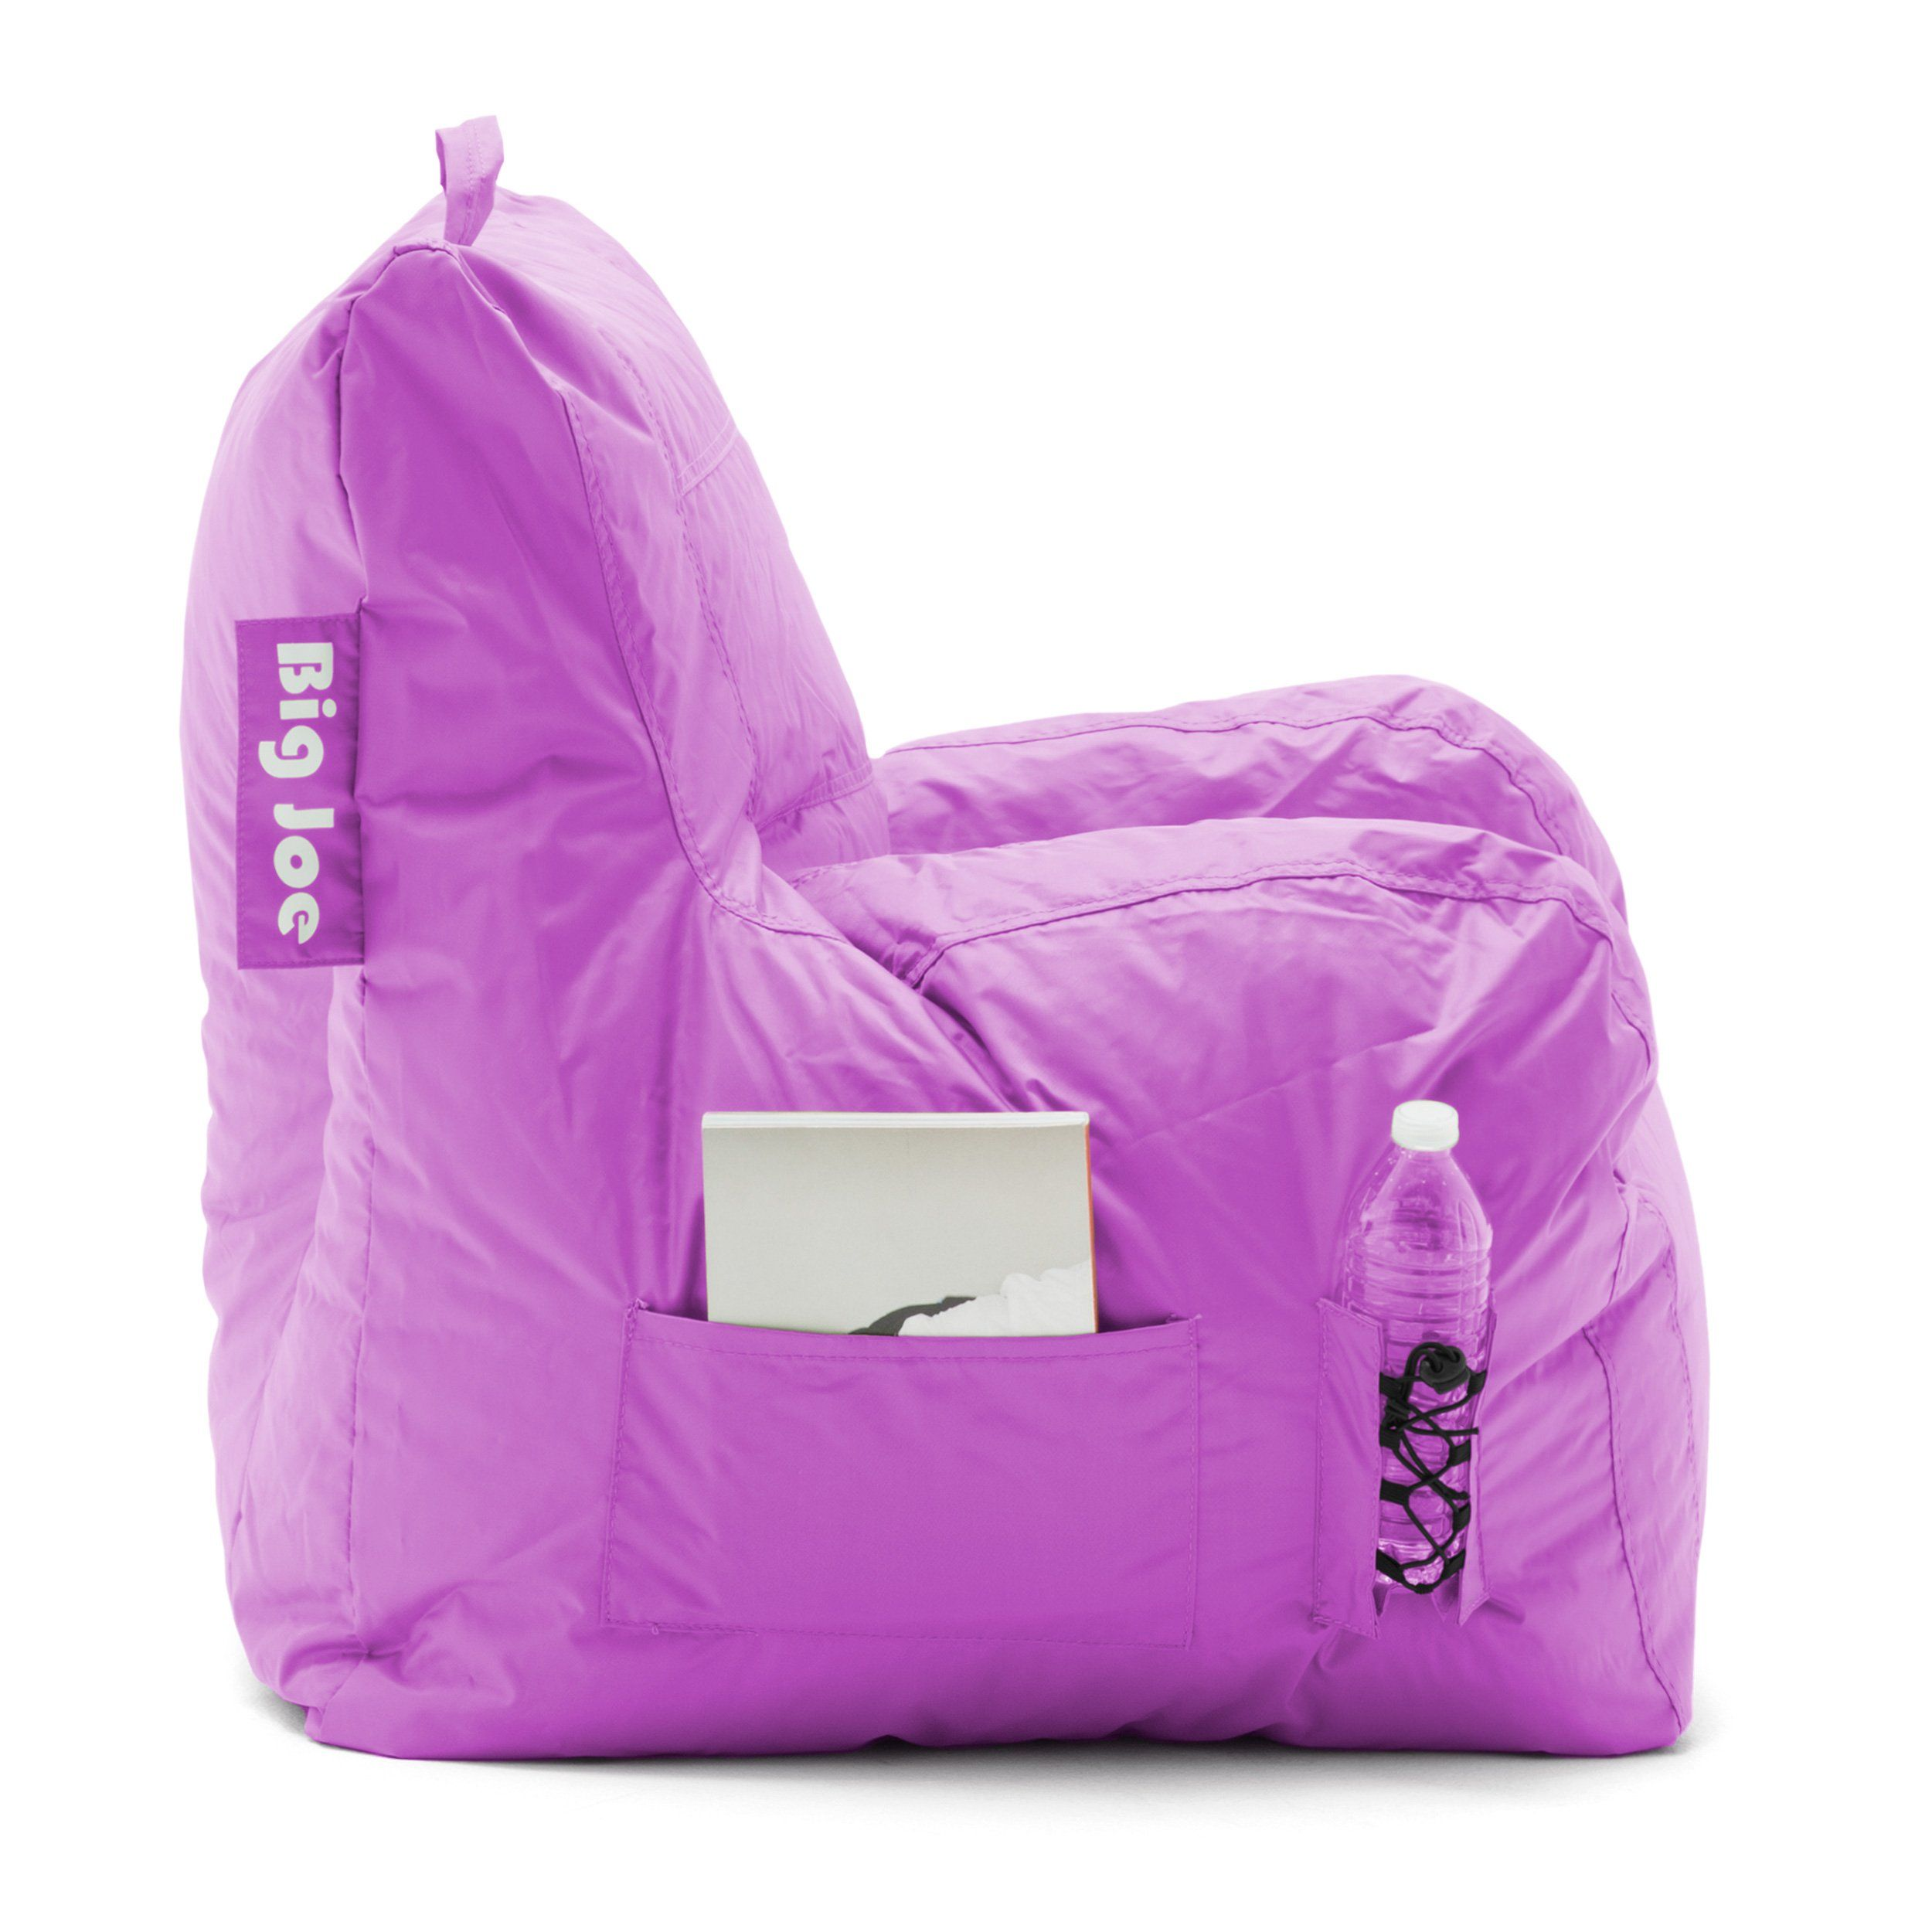 Awe Inspiring Radiant Orchid Big Joe Dorm Chair Bean Bags Home Kitchen Pabps2019 Chair Design Images Pabps2019Com